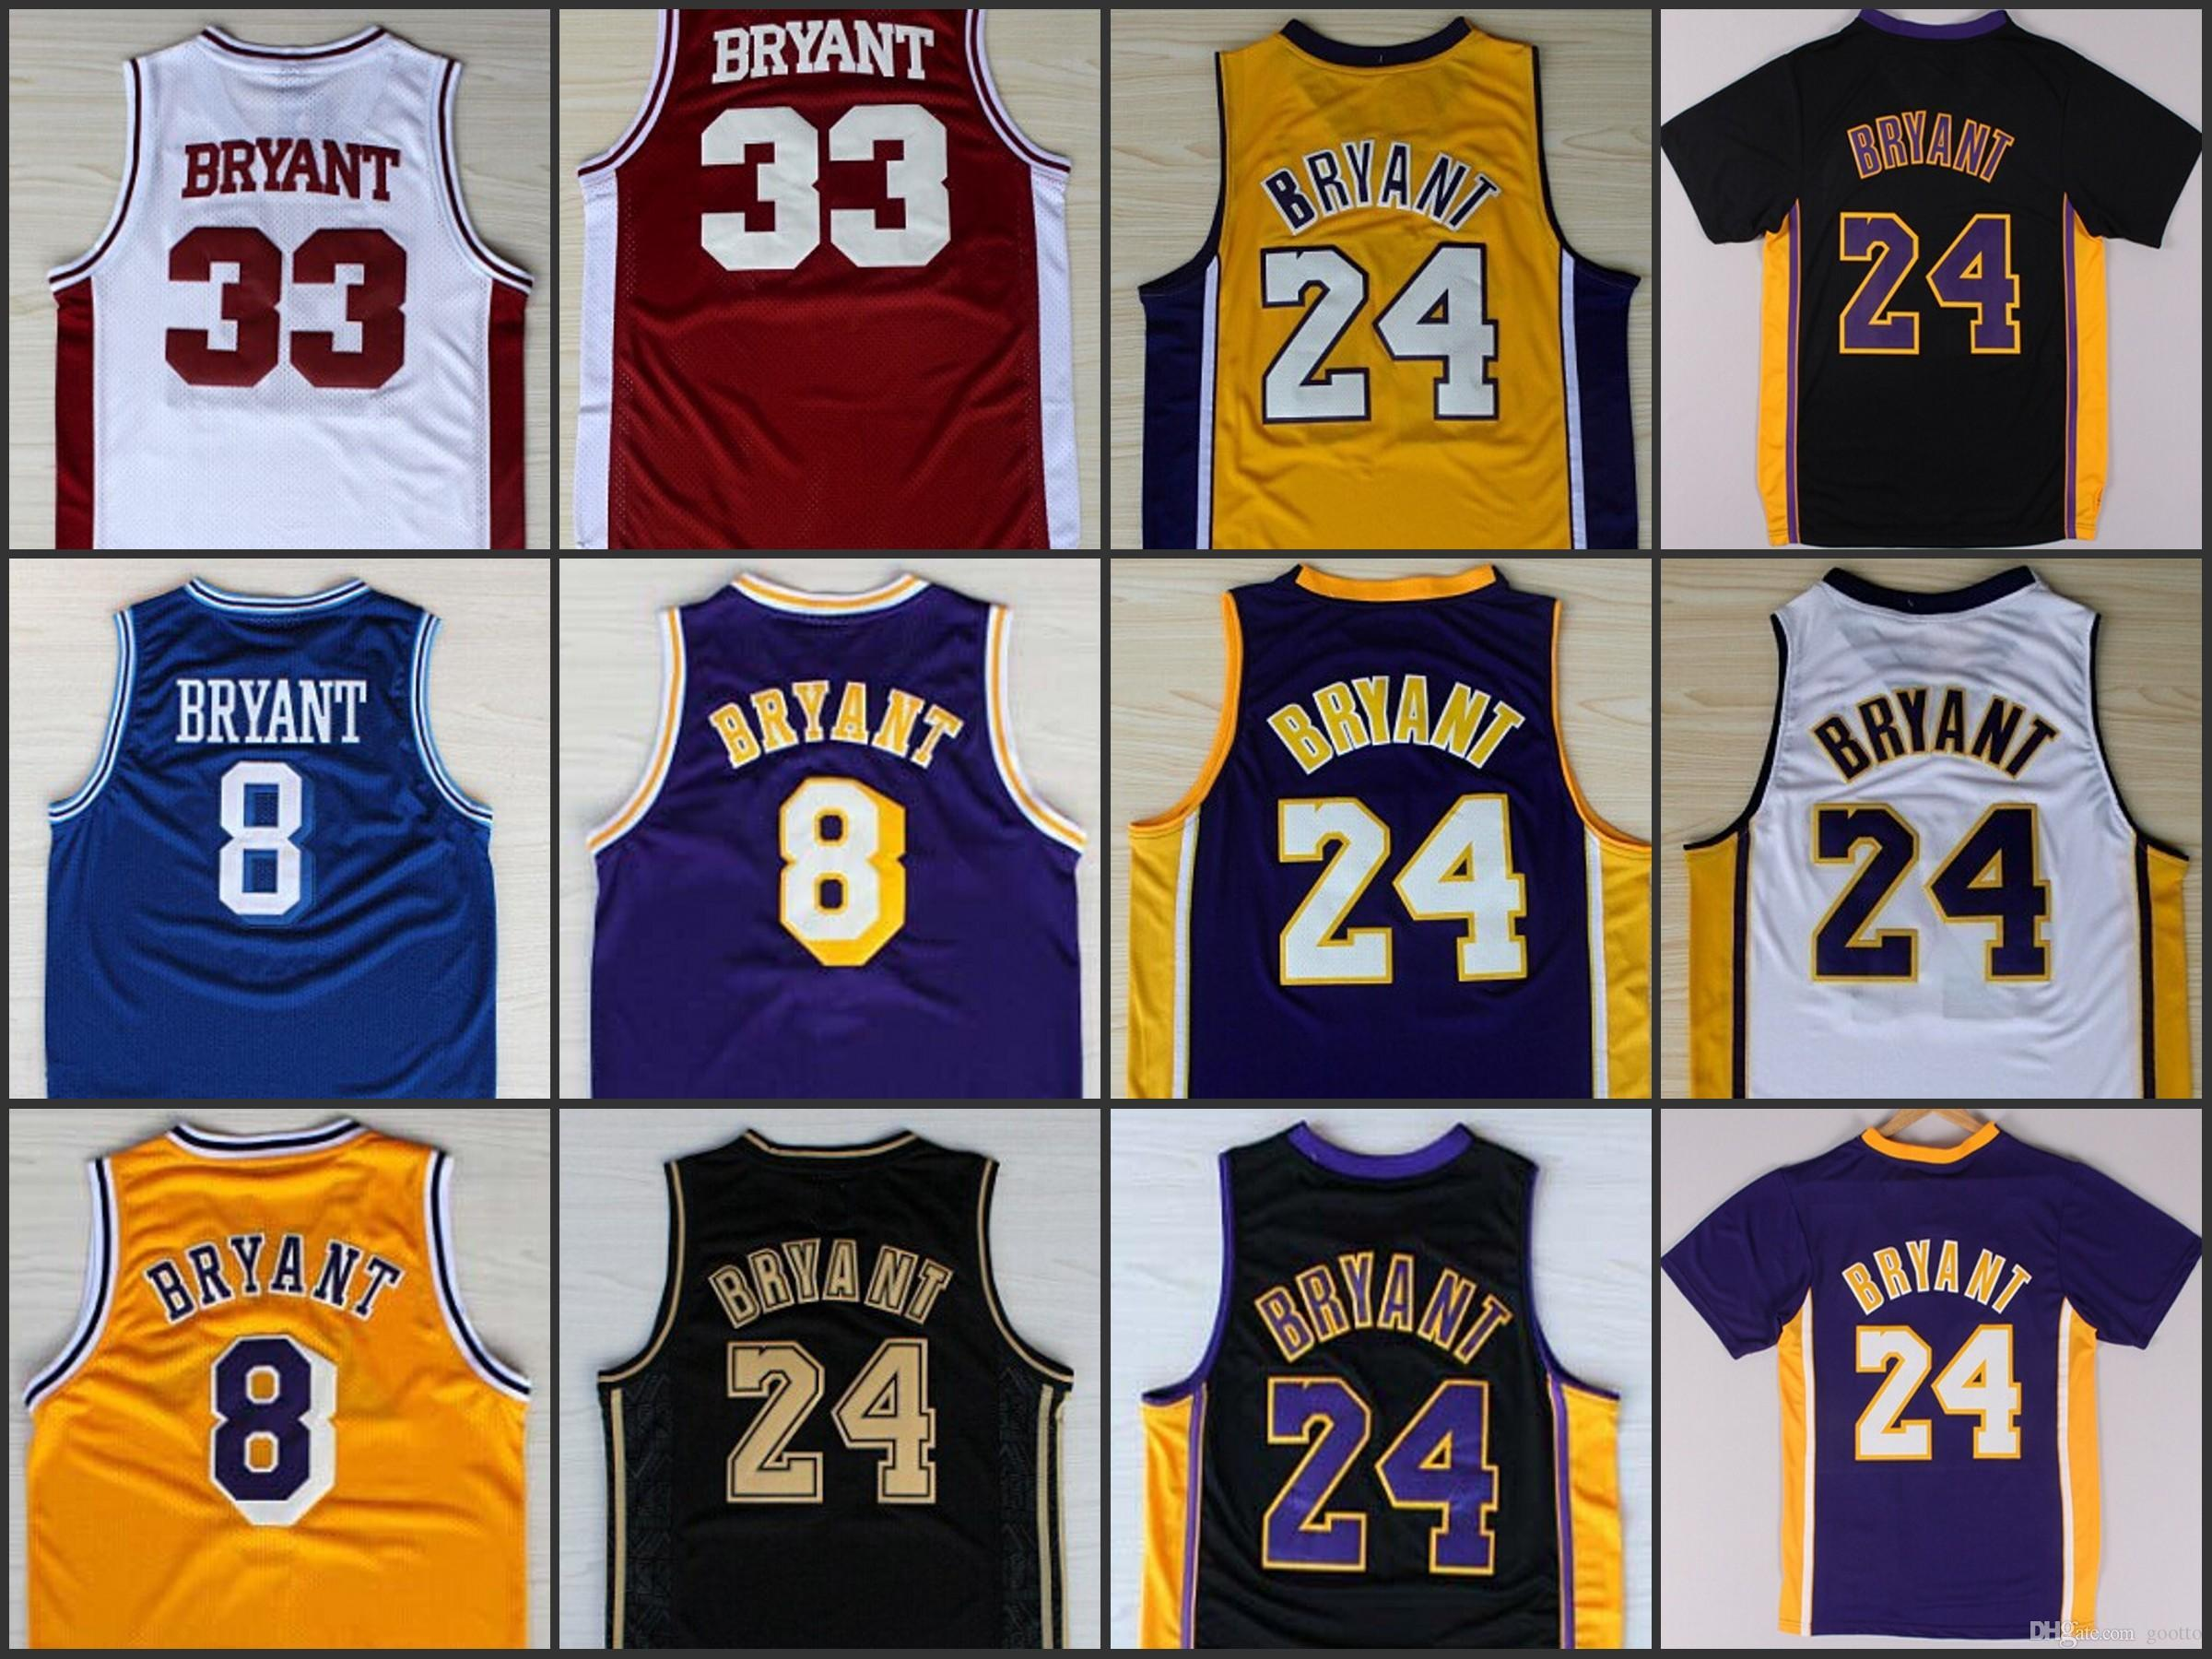 3913a972a0d 2019 Wholesale 24 Kobe Bryant Jersey 8 Throwback High School Lower Merion  Yellow Purple White Black Blue Red From Gootto, $14.22 | DHgate.Com